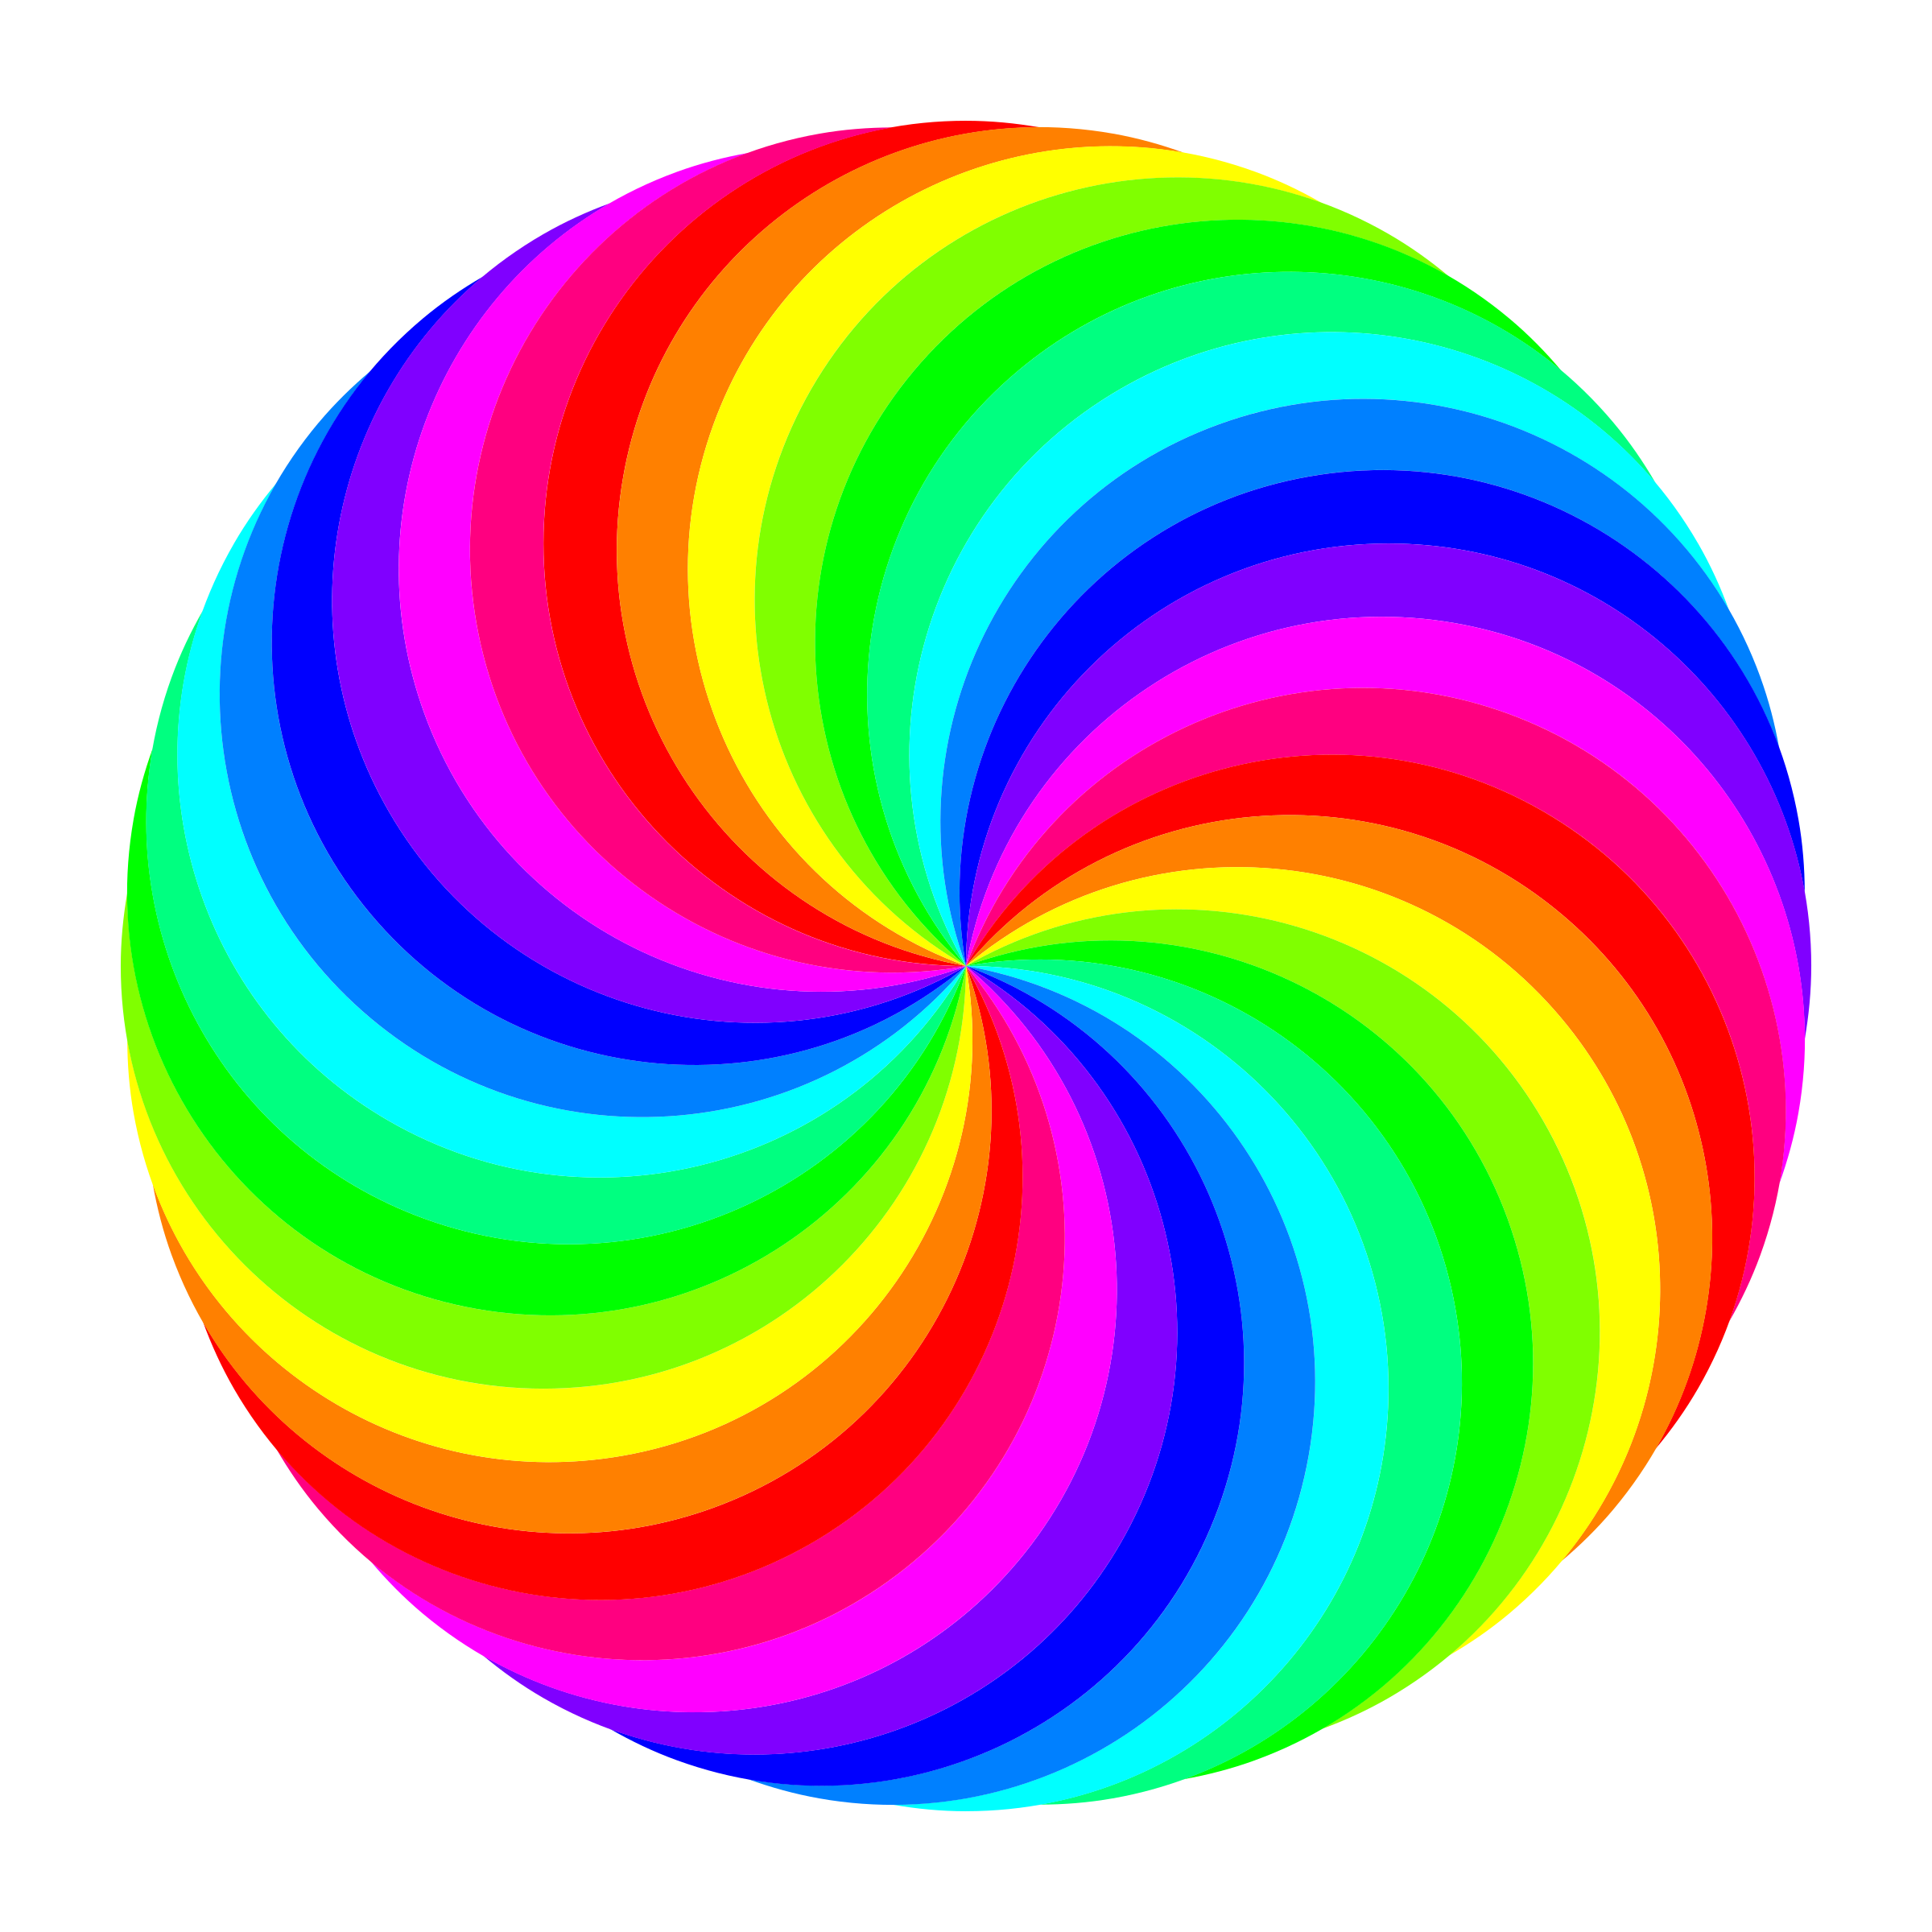 36 circle swirl 12 color by 10binary